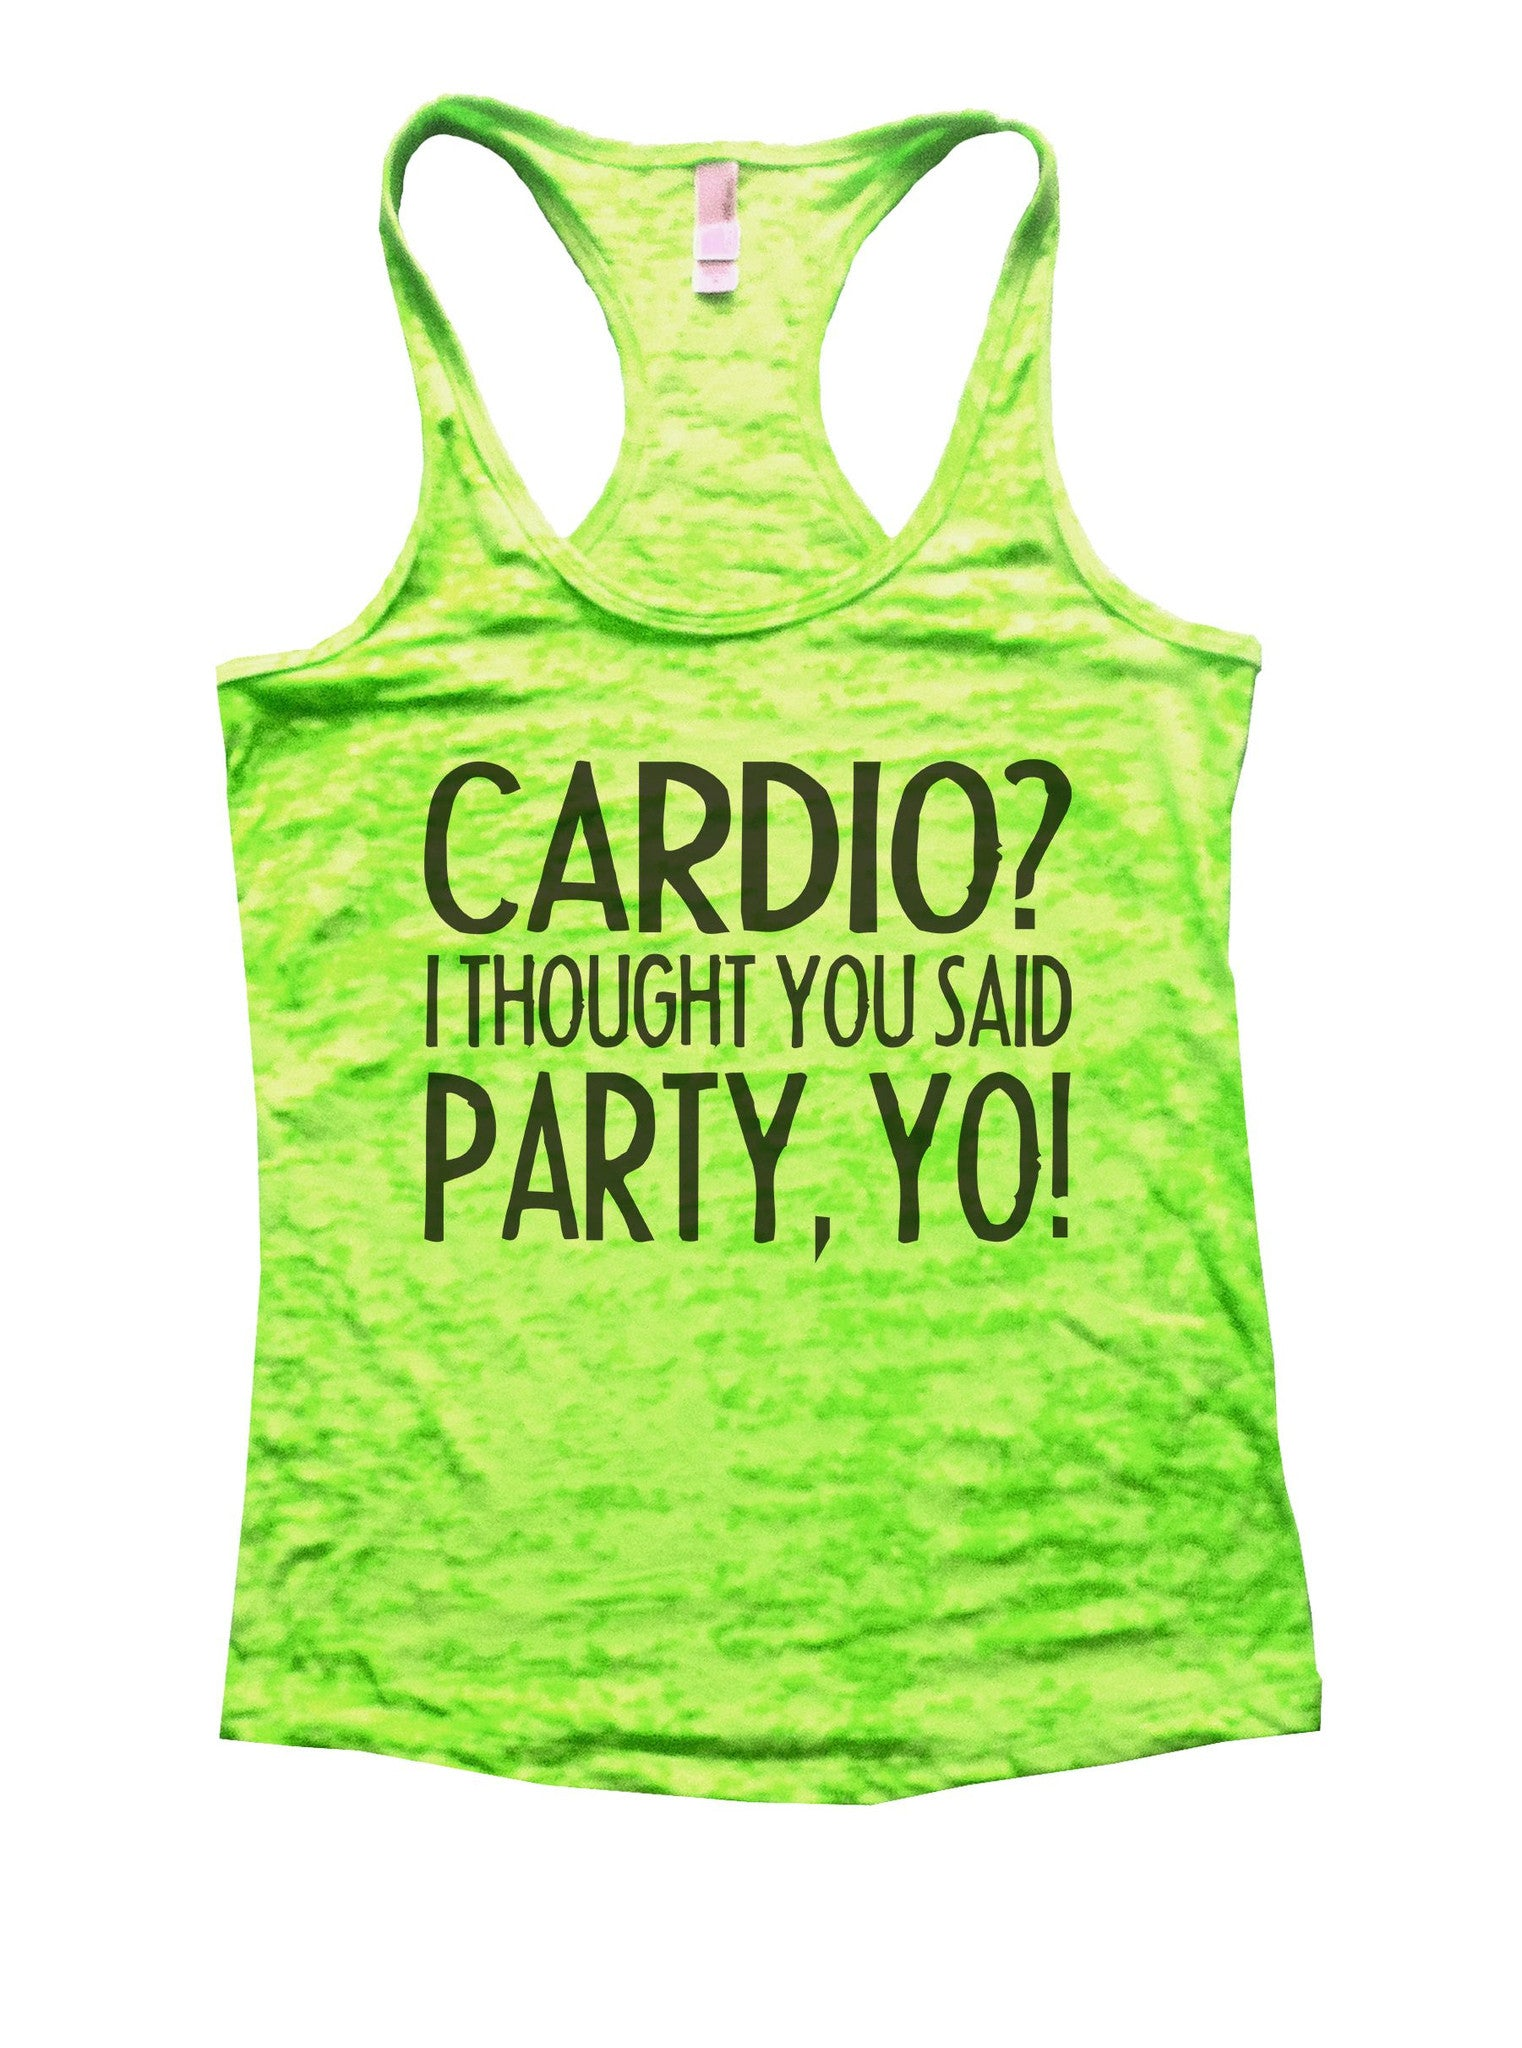 Cardio? I Thought You Said Party, Yo! Burnout Tank Top By BurnoutTankTops.com - 932 - Funny Shirts Tank Tops Burnouts and Triblends  - 4